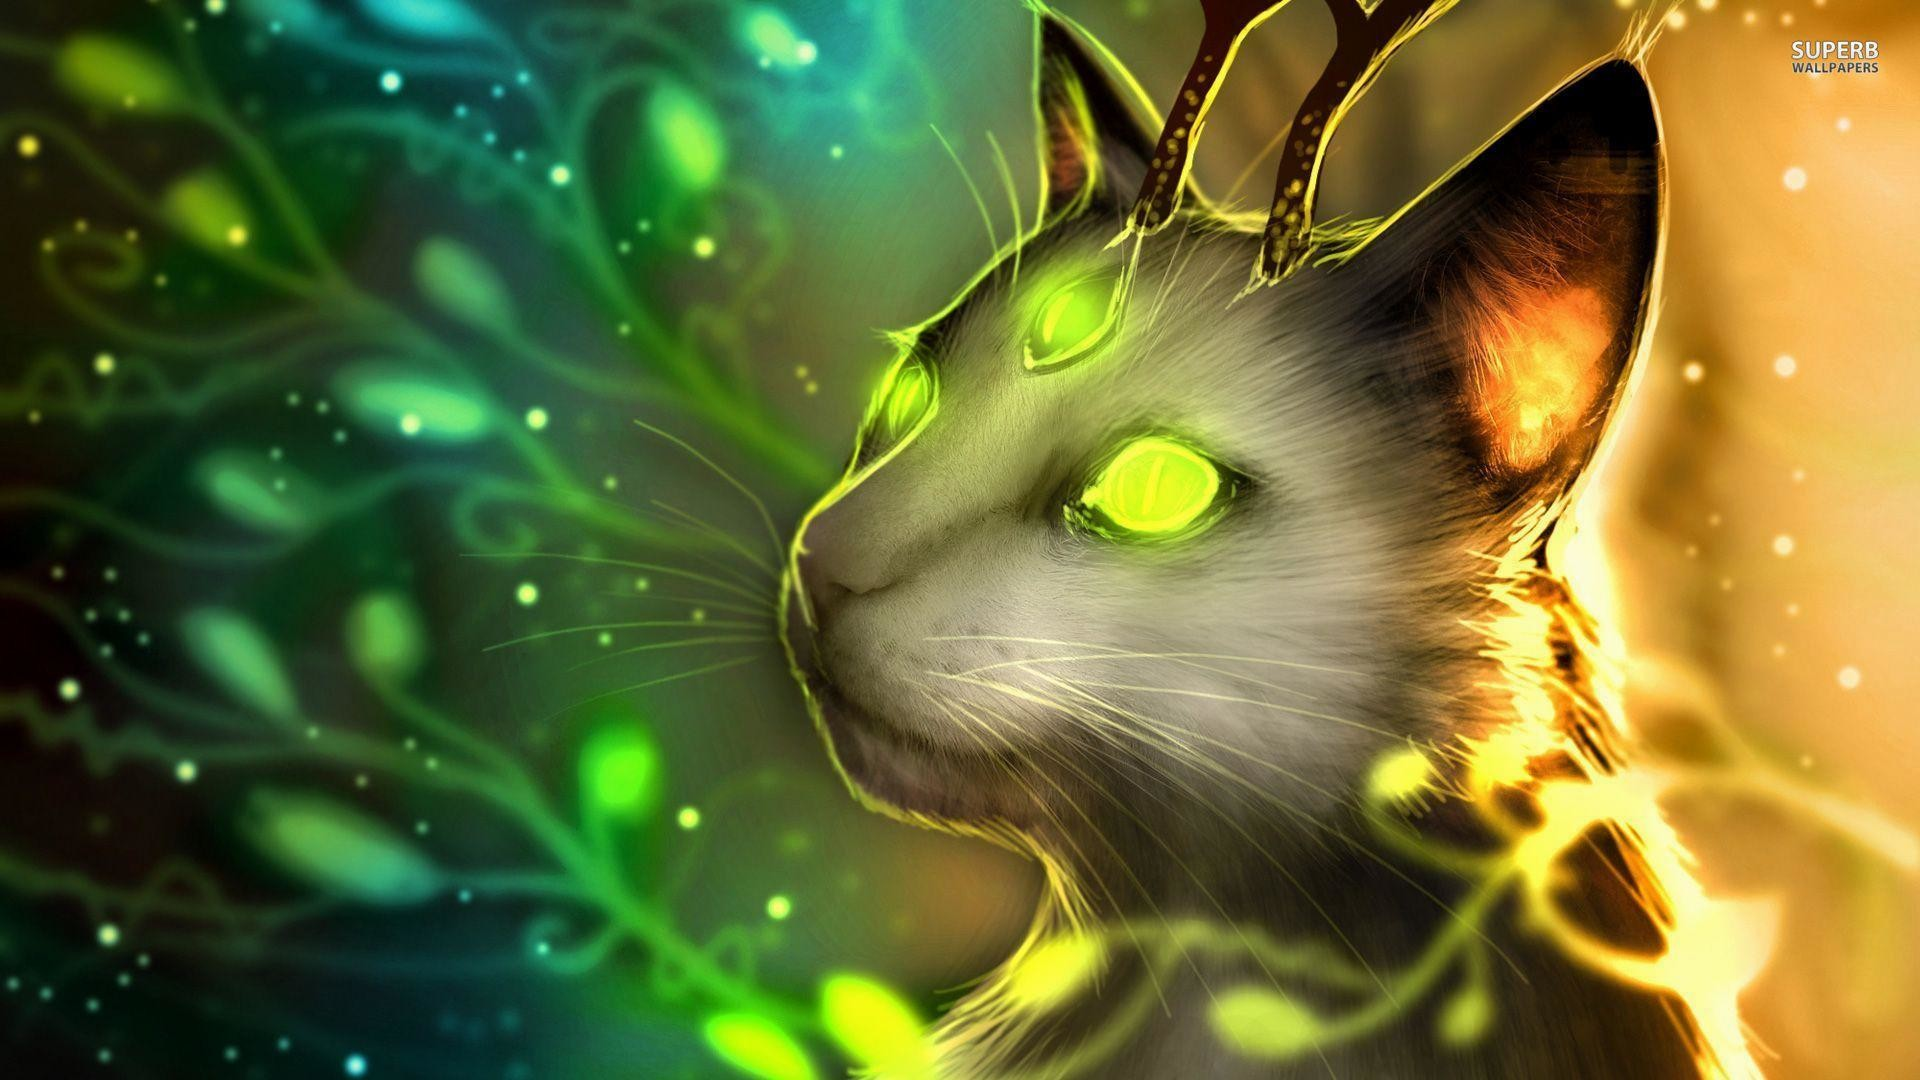 Warrior Cat Wallpapers Backgrounds (56+ images)